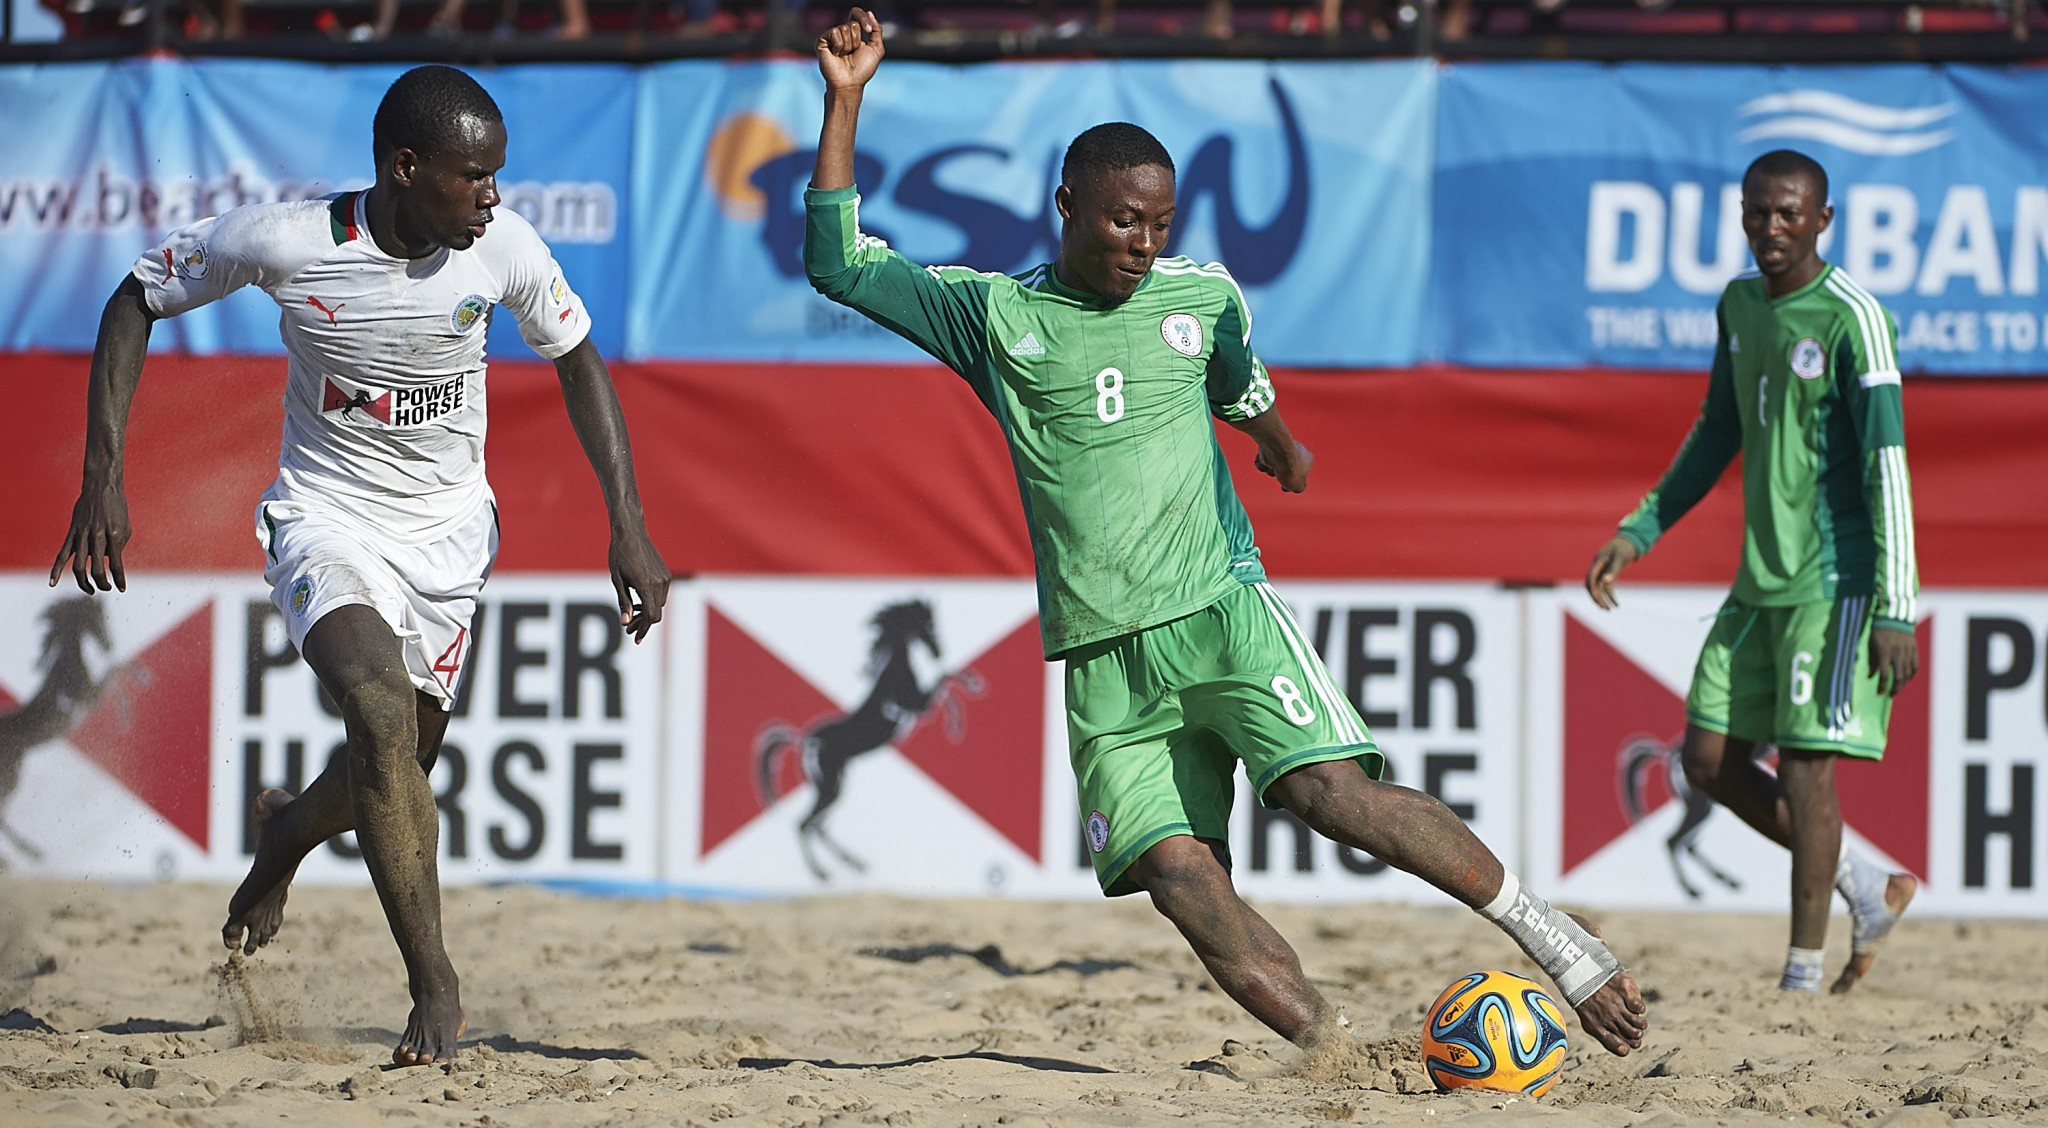 Super Sand Eagles to reclaim trophy at the 2015 COPA Lagos tournament